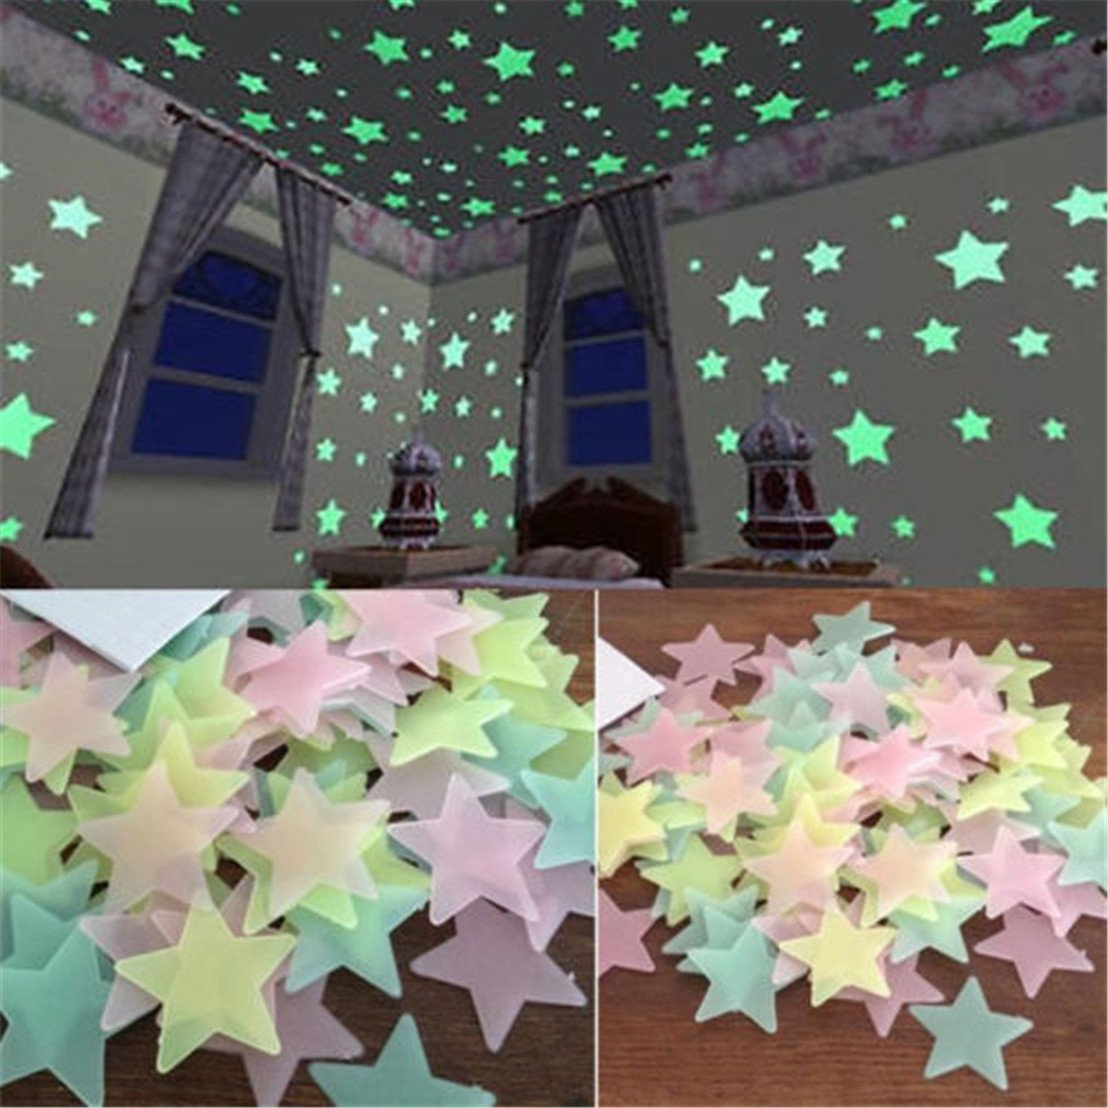 GUAngqi 100pcs Wall Glow In The Dark Star Stickers Decal In Kids Room